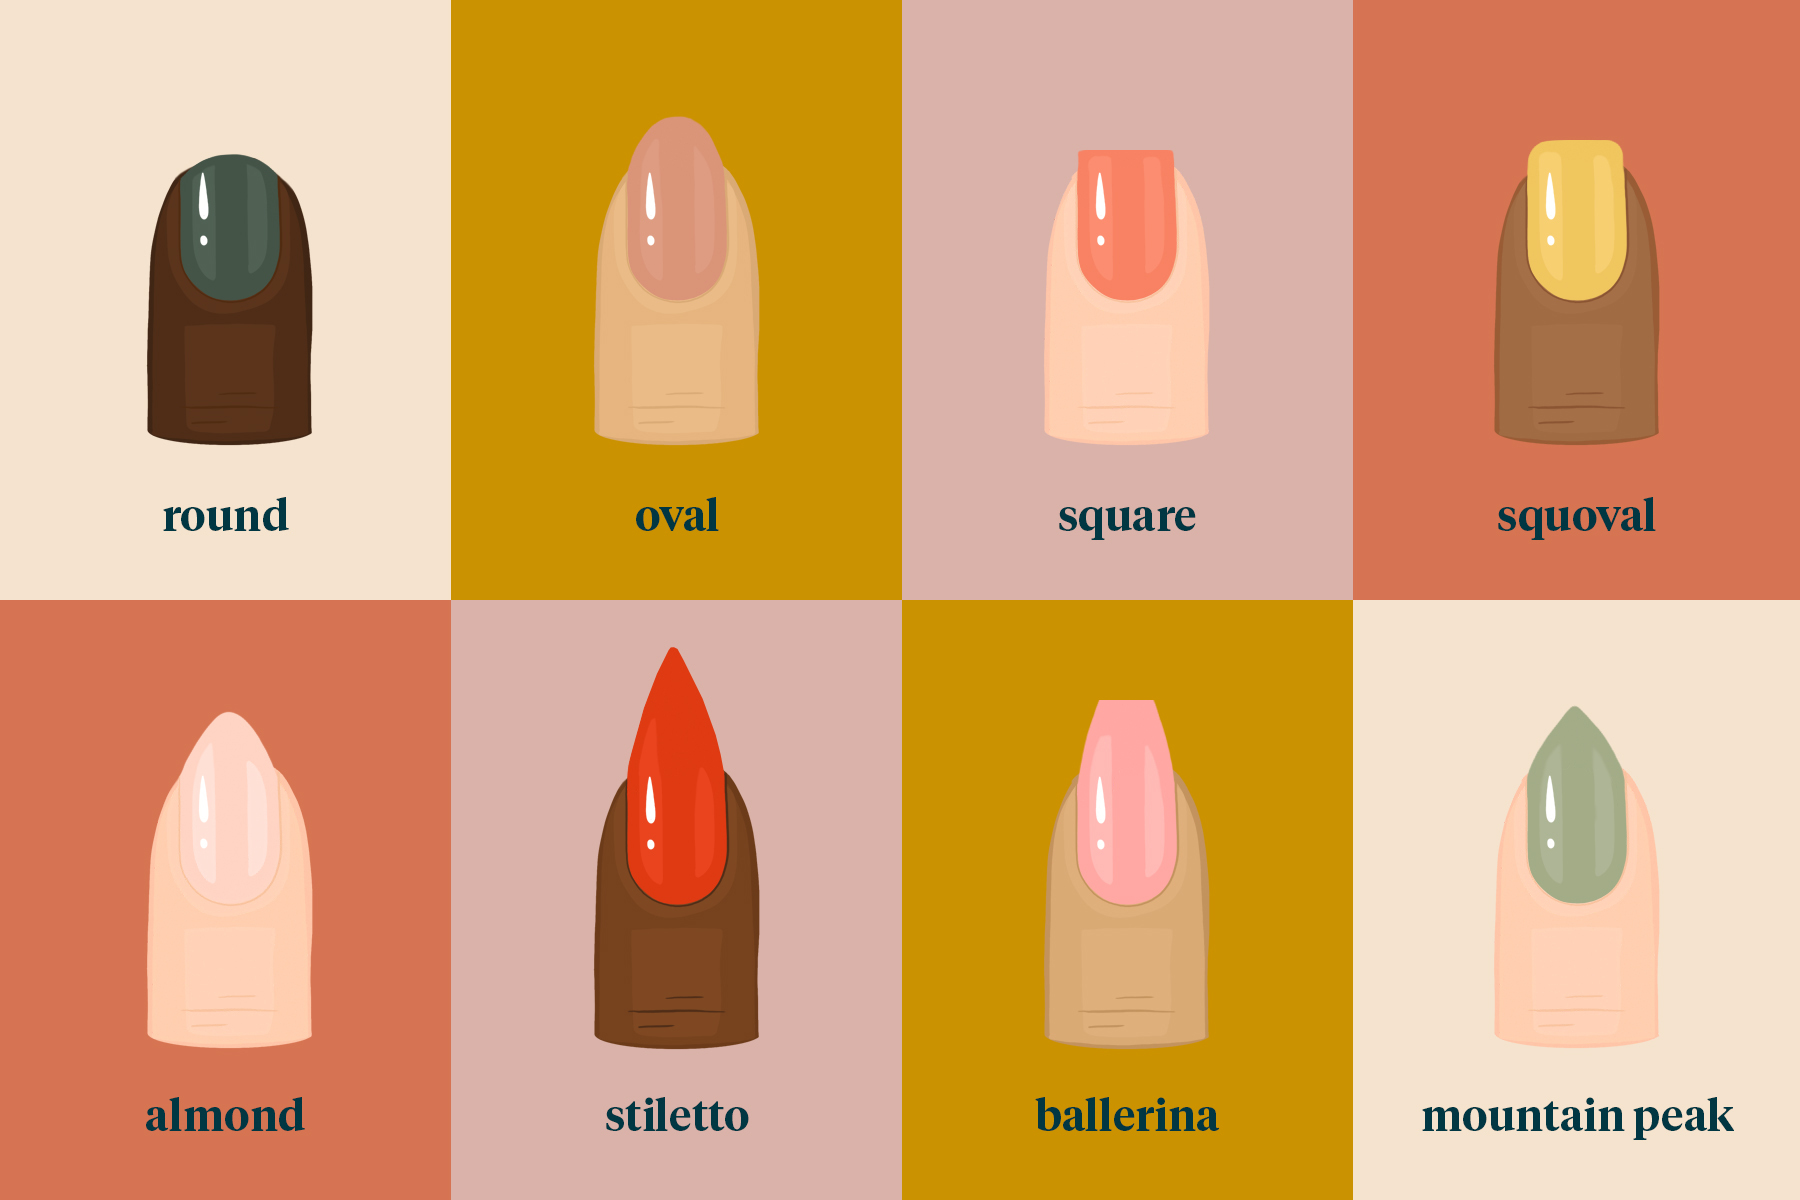 nail shapes, how to choose a nail shape, square nails